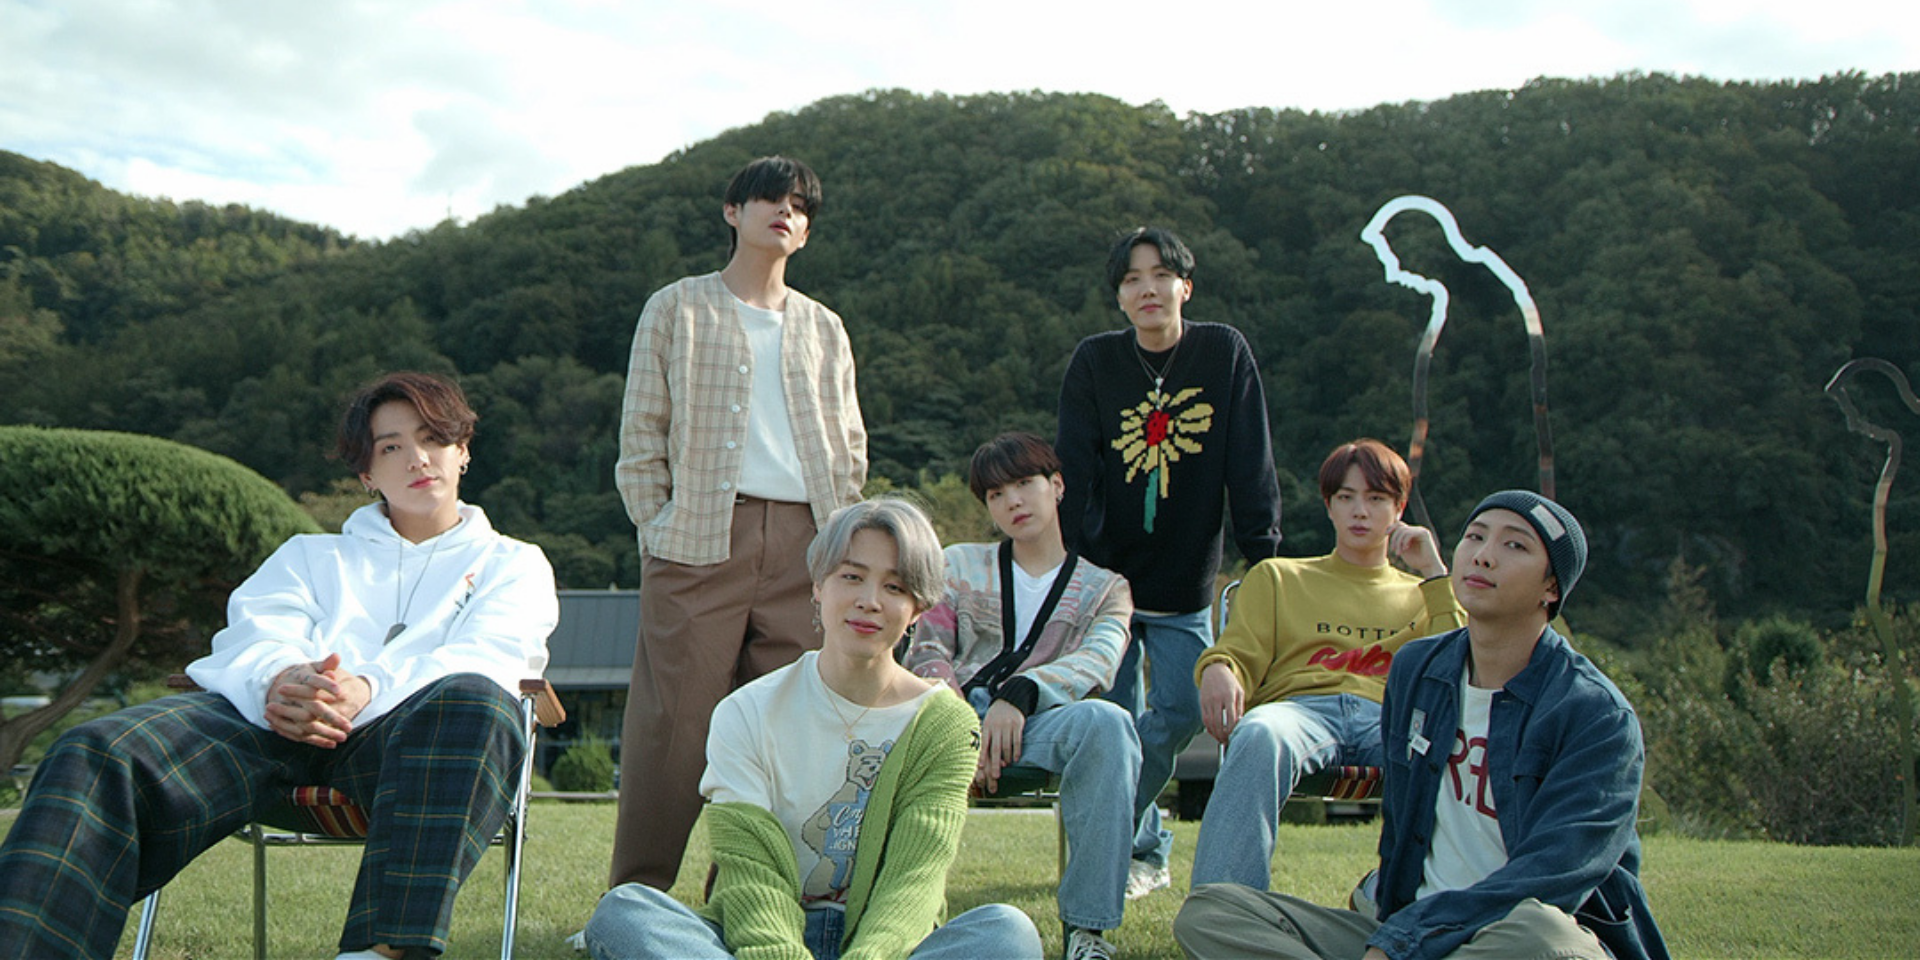 BTS encourage young people to share their story for UN 'Youth Today, Your Stories' project